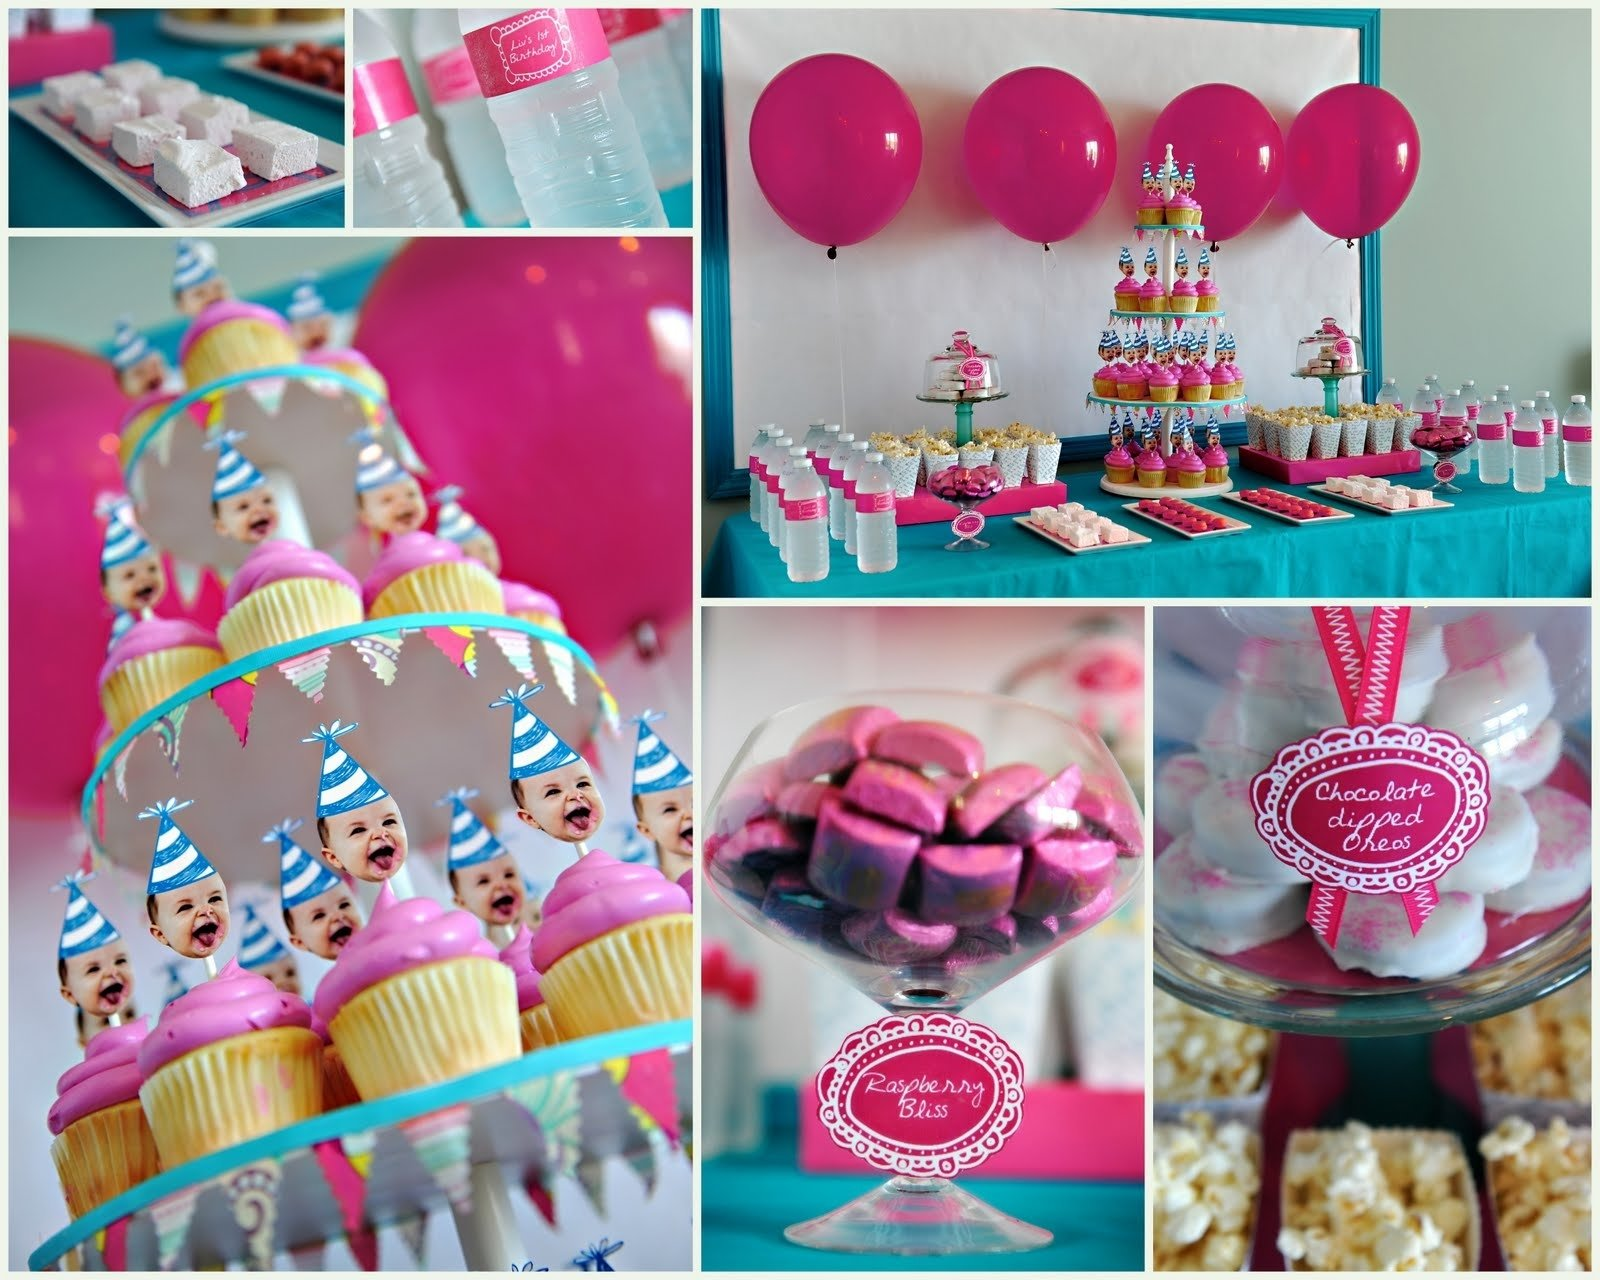 10 Gorgeous Birthday Party Ideas For 9 Yr Old Girl natural year boy birthday party ideas year boy birthday party ideas 2020